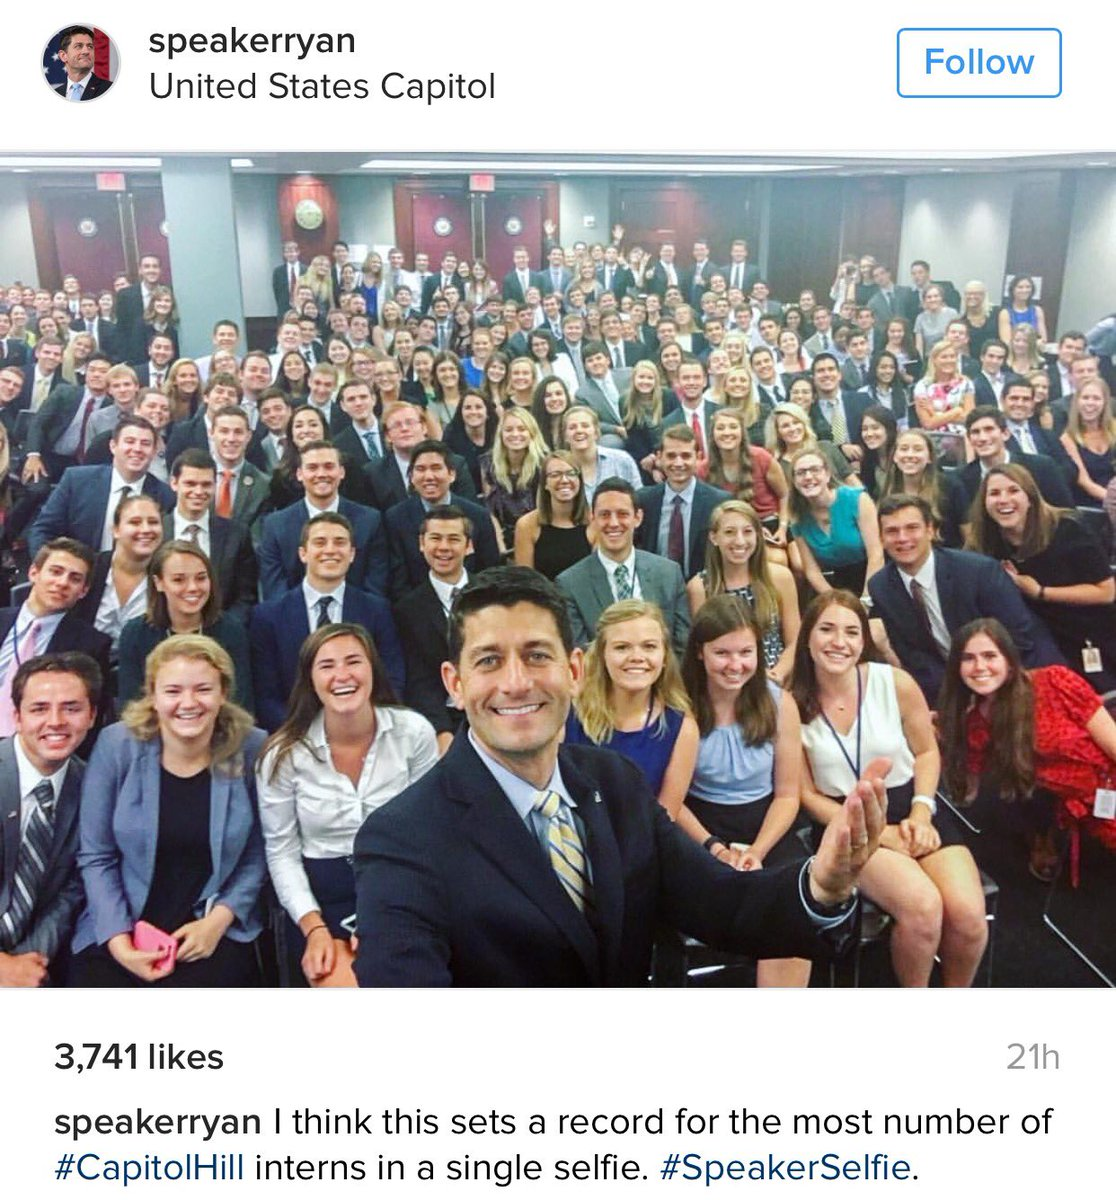 House Speaker Paul Ryan, Instagram selfie with Congressional interns, July 17, 2016